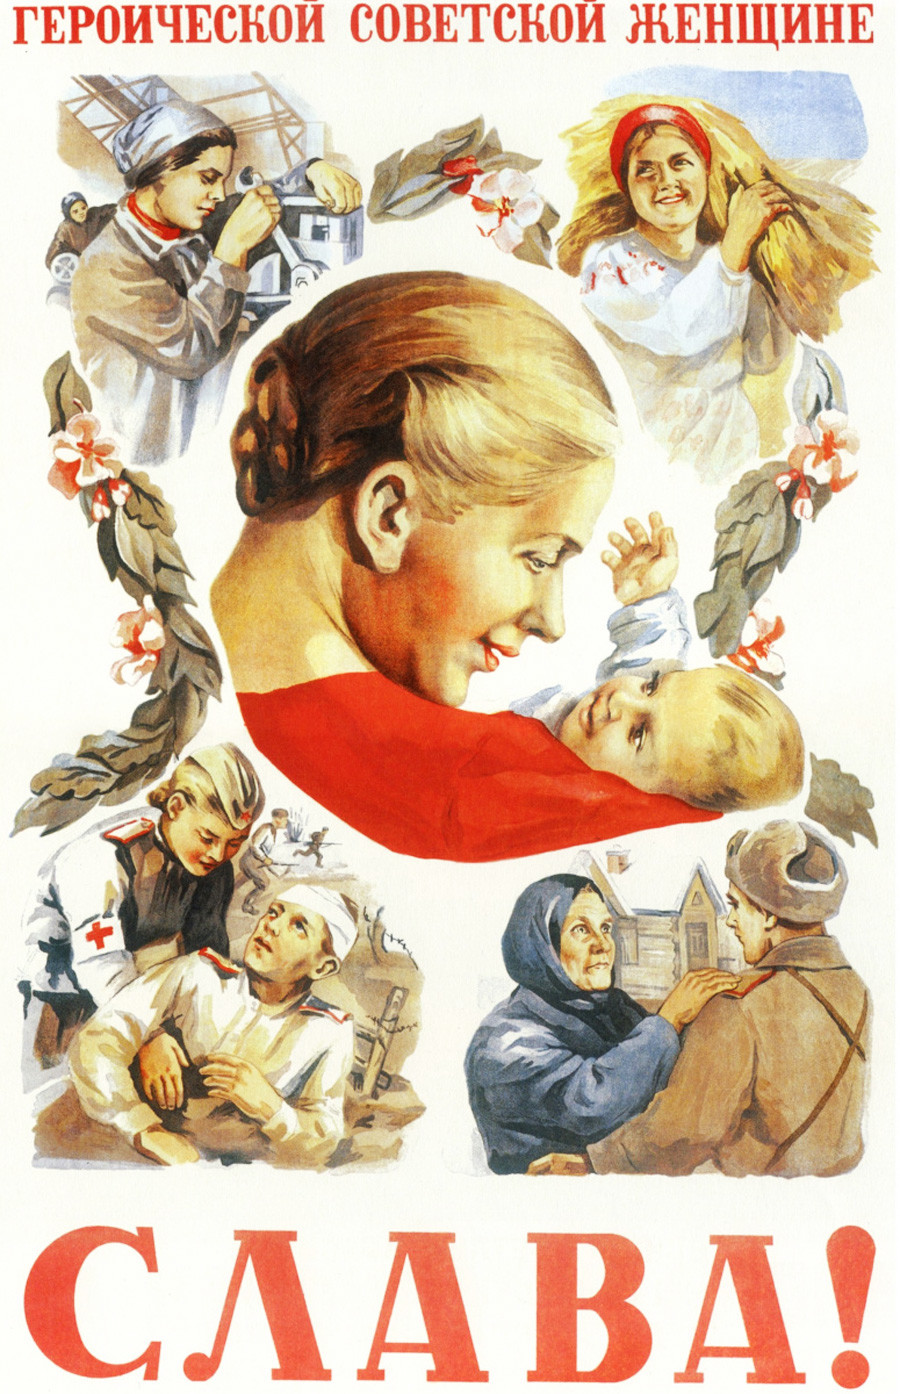 Glory to the  heroic Soviet woman